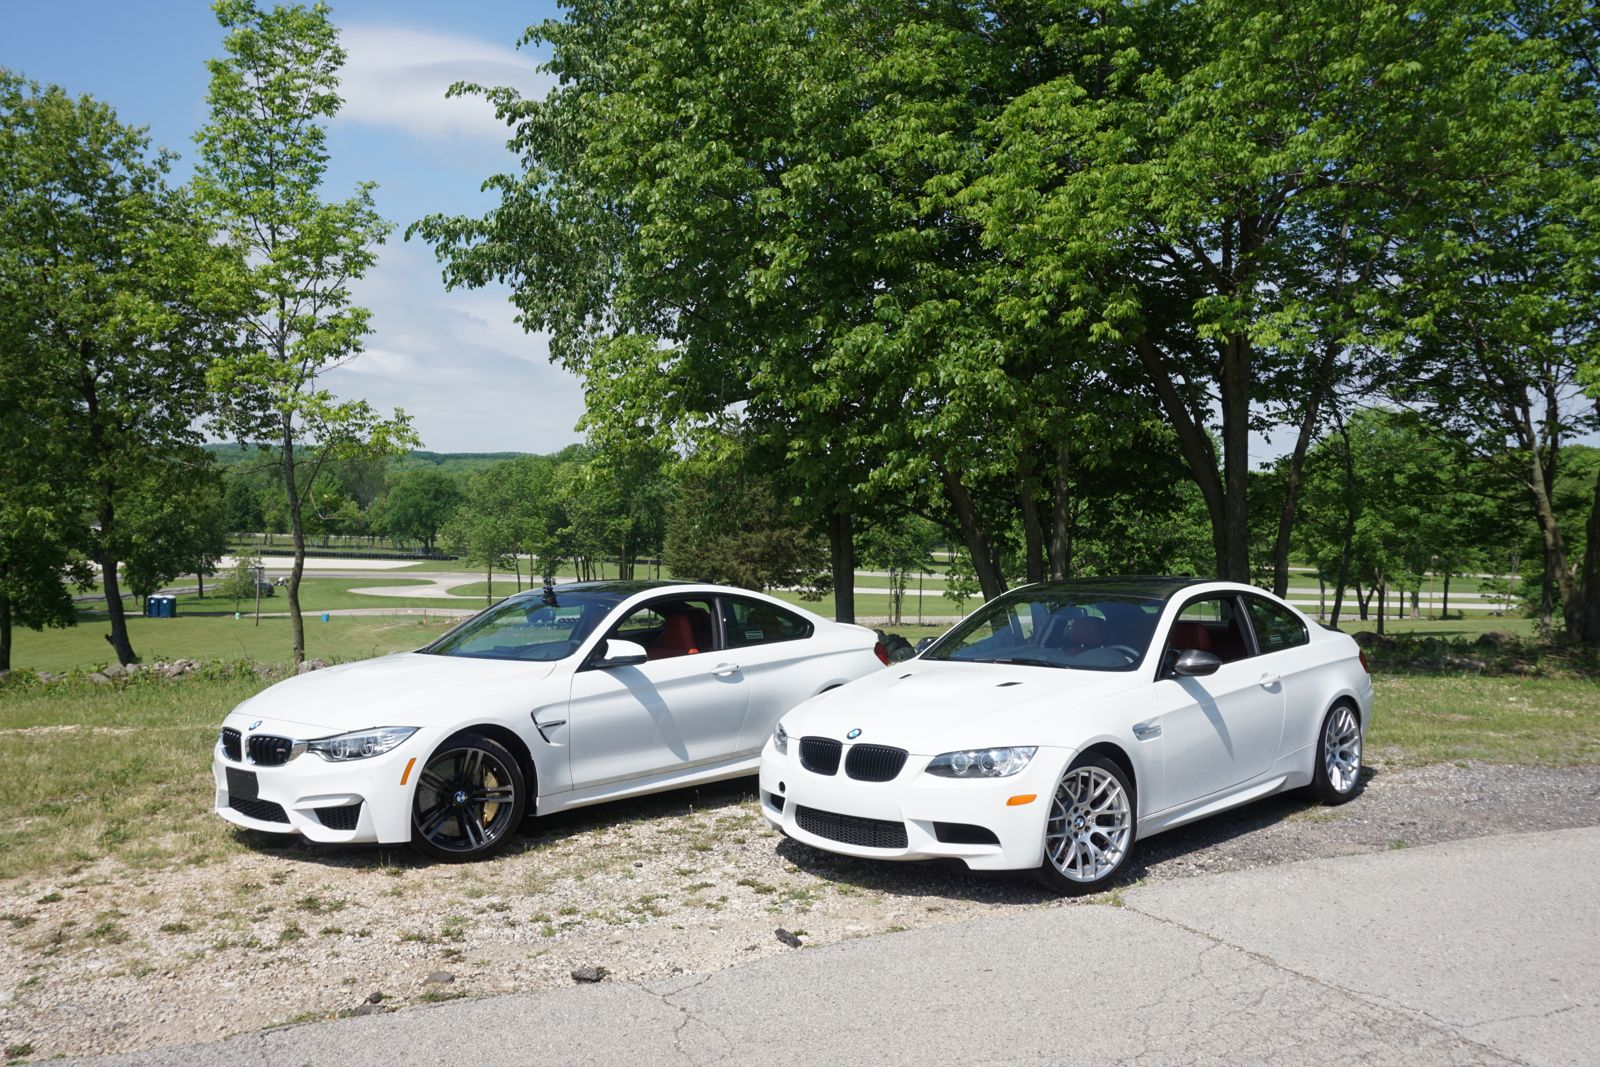 Is the BMW E92 M3 Better than the F82 M4? Best Car under